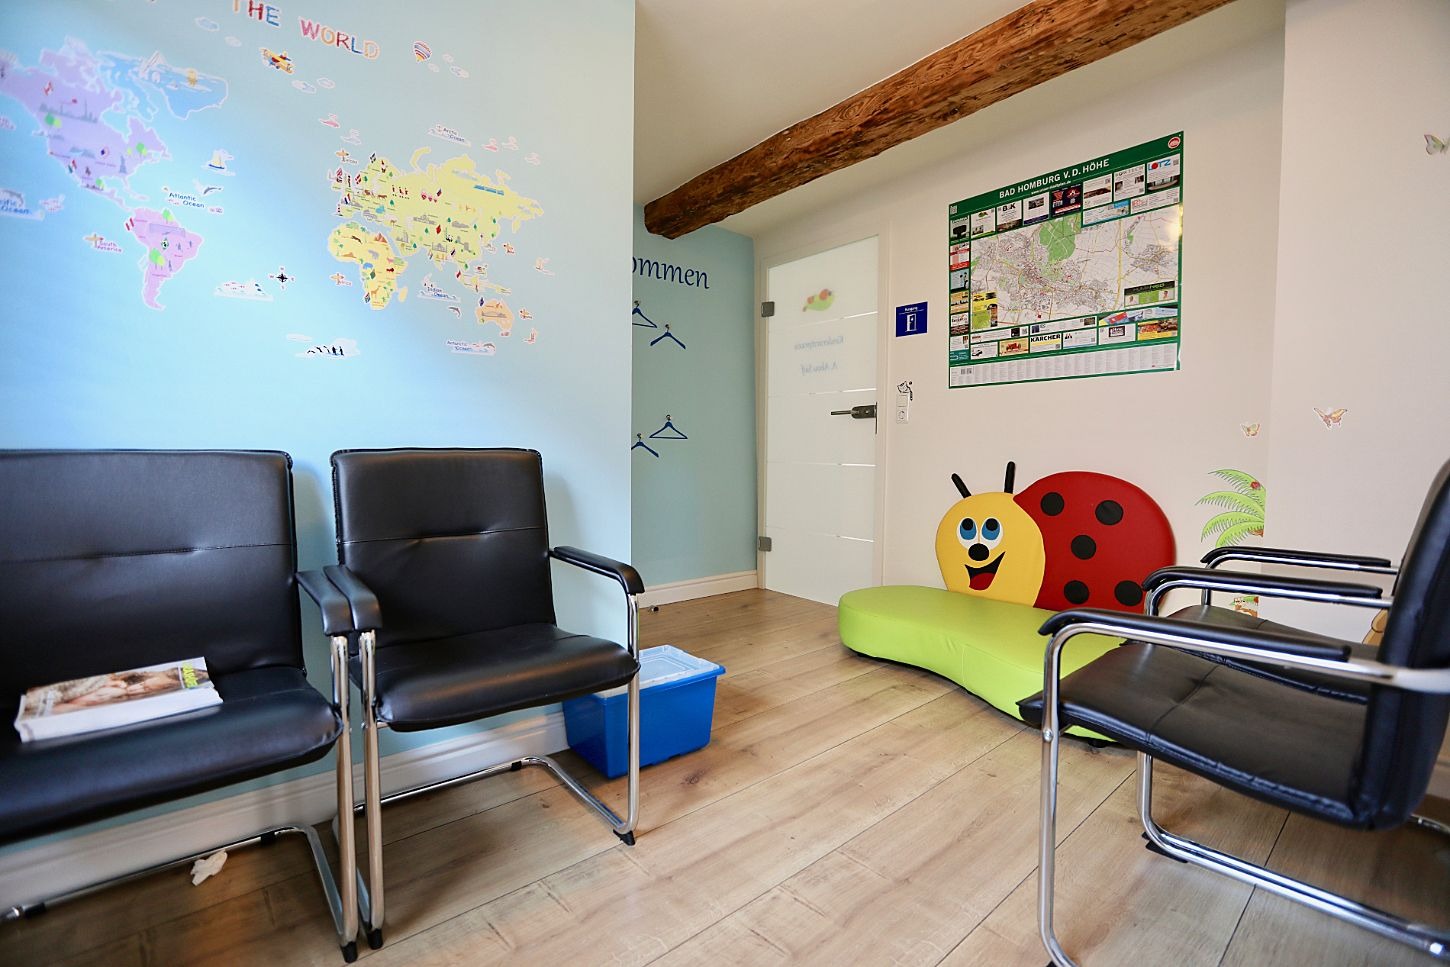 Pediatrician practice in Bad Homburg 2